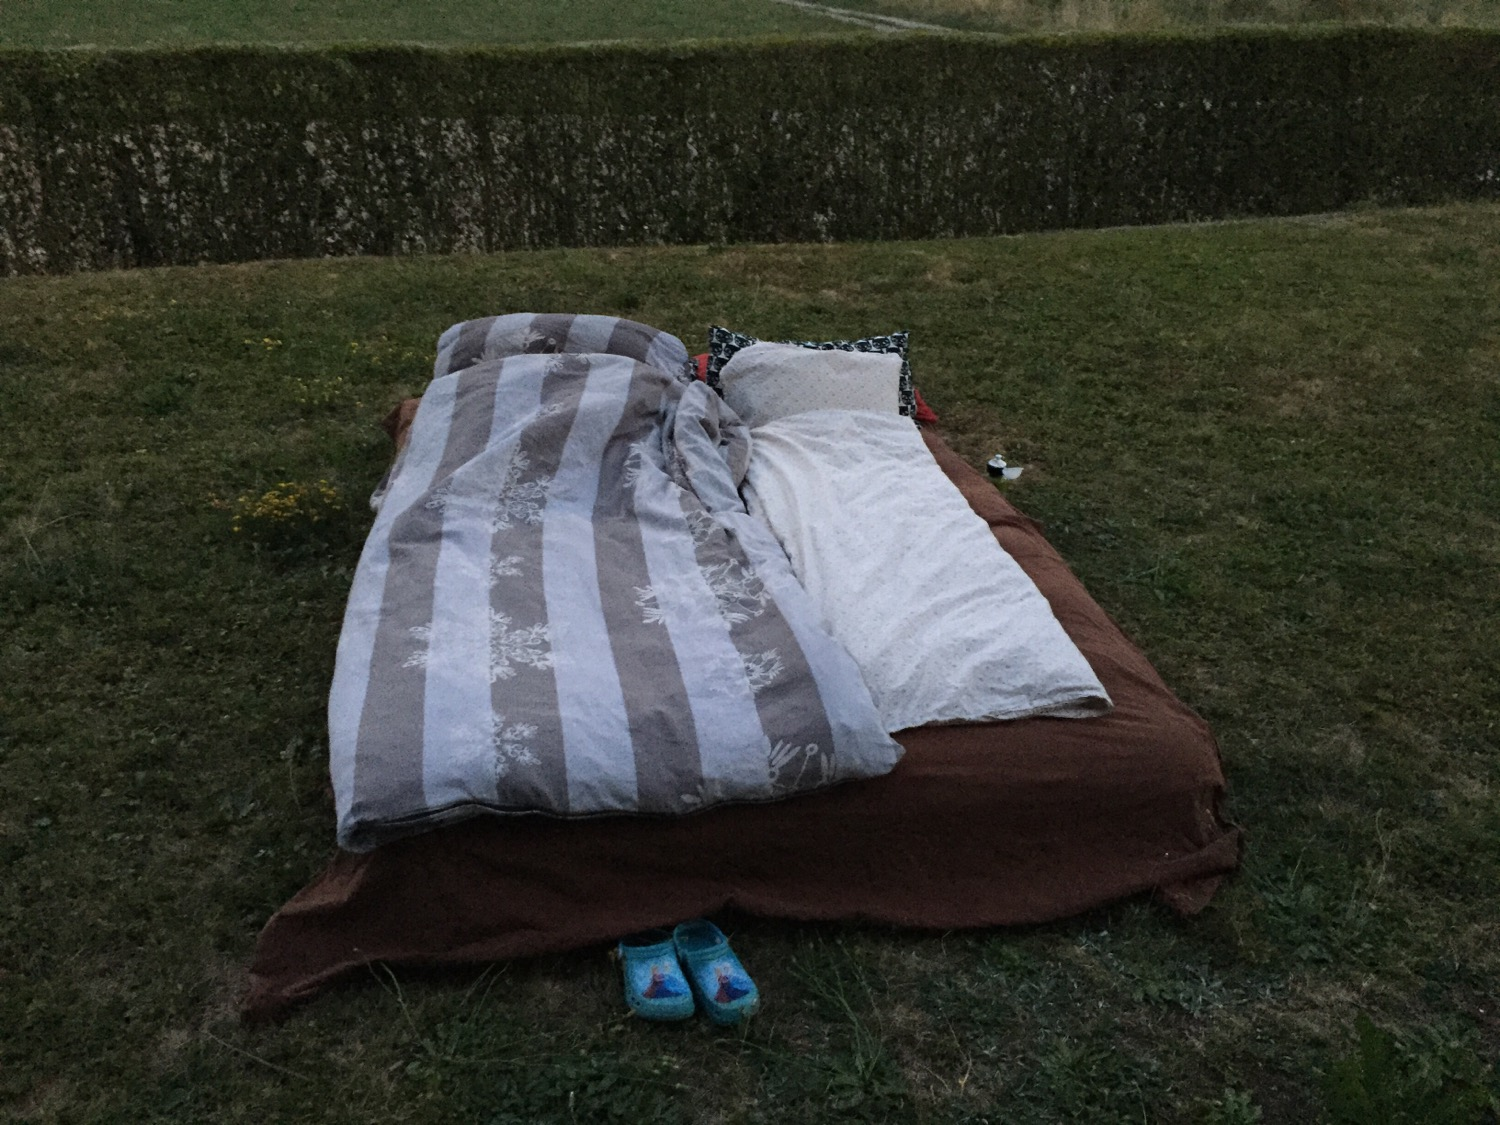 First time sleeping outside with my daughter. All went well!